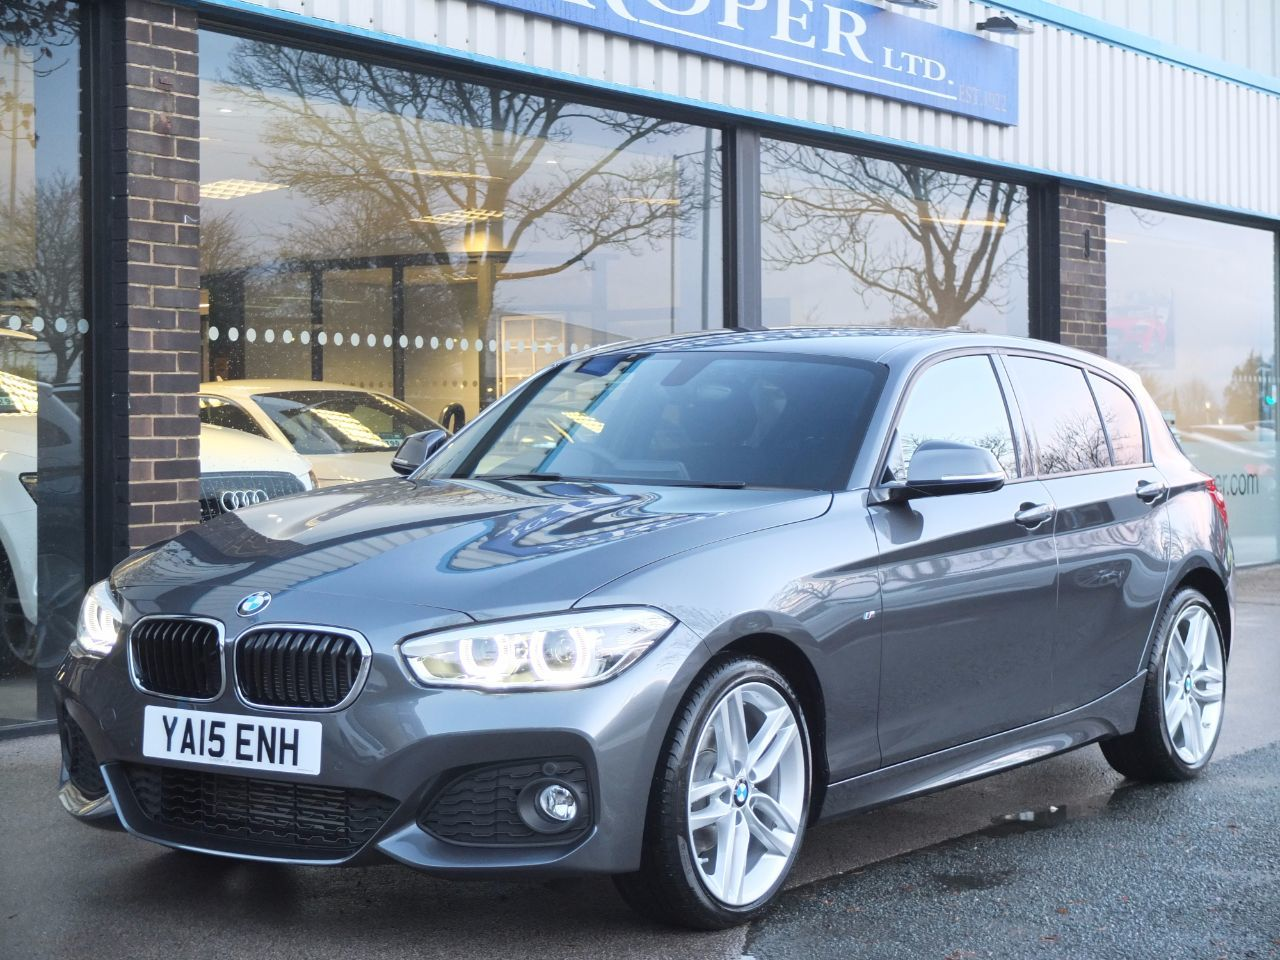 BMW 1 Series 1.5 116d M Sport 5dr Auto New Model (Navigation) Hatchback Diesel Mineral Grey MetallicBMW 1 Series 1.5 116d M Sport 5dr Auto New Model (Navigation) Hatchback Diesel Mineral Grey Metallic at fa Roper Ltd Bradford